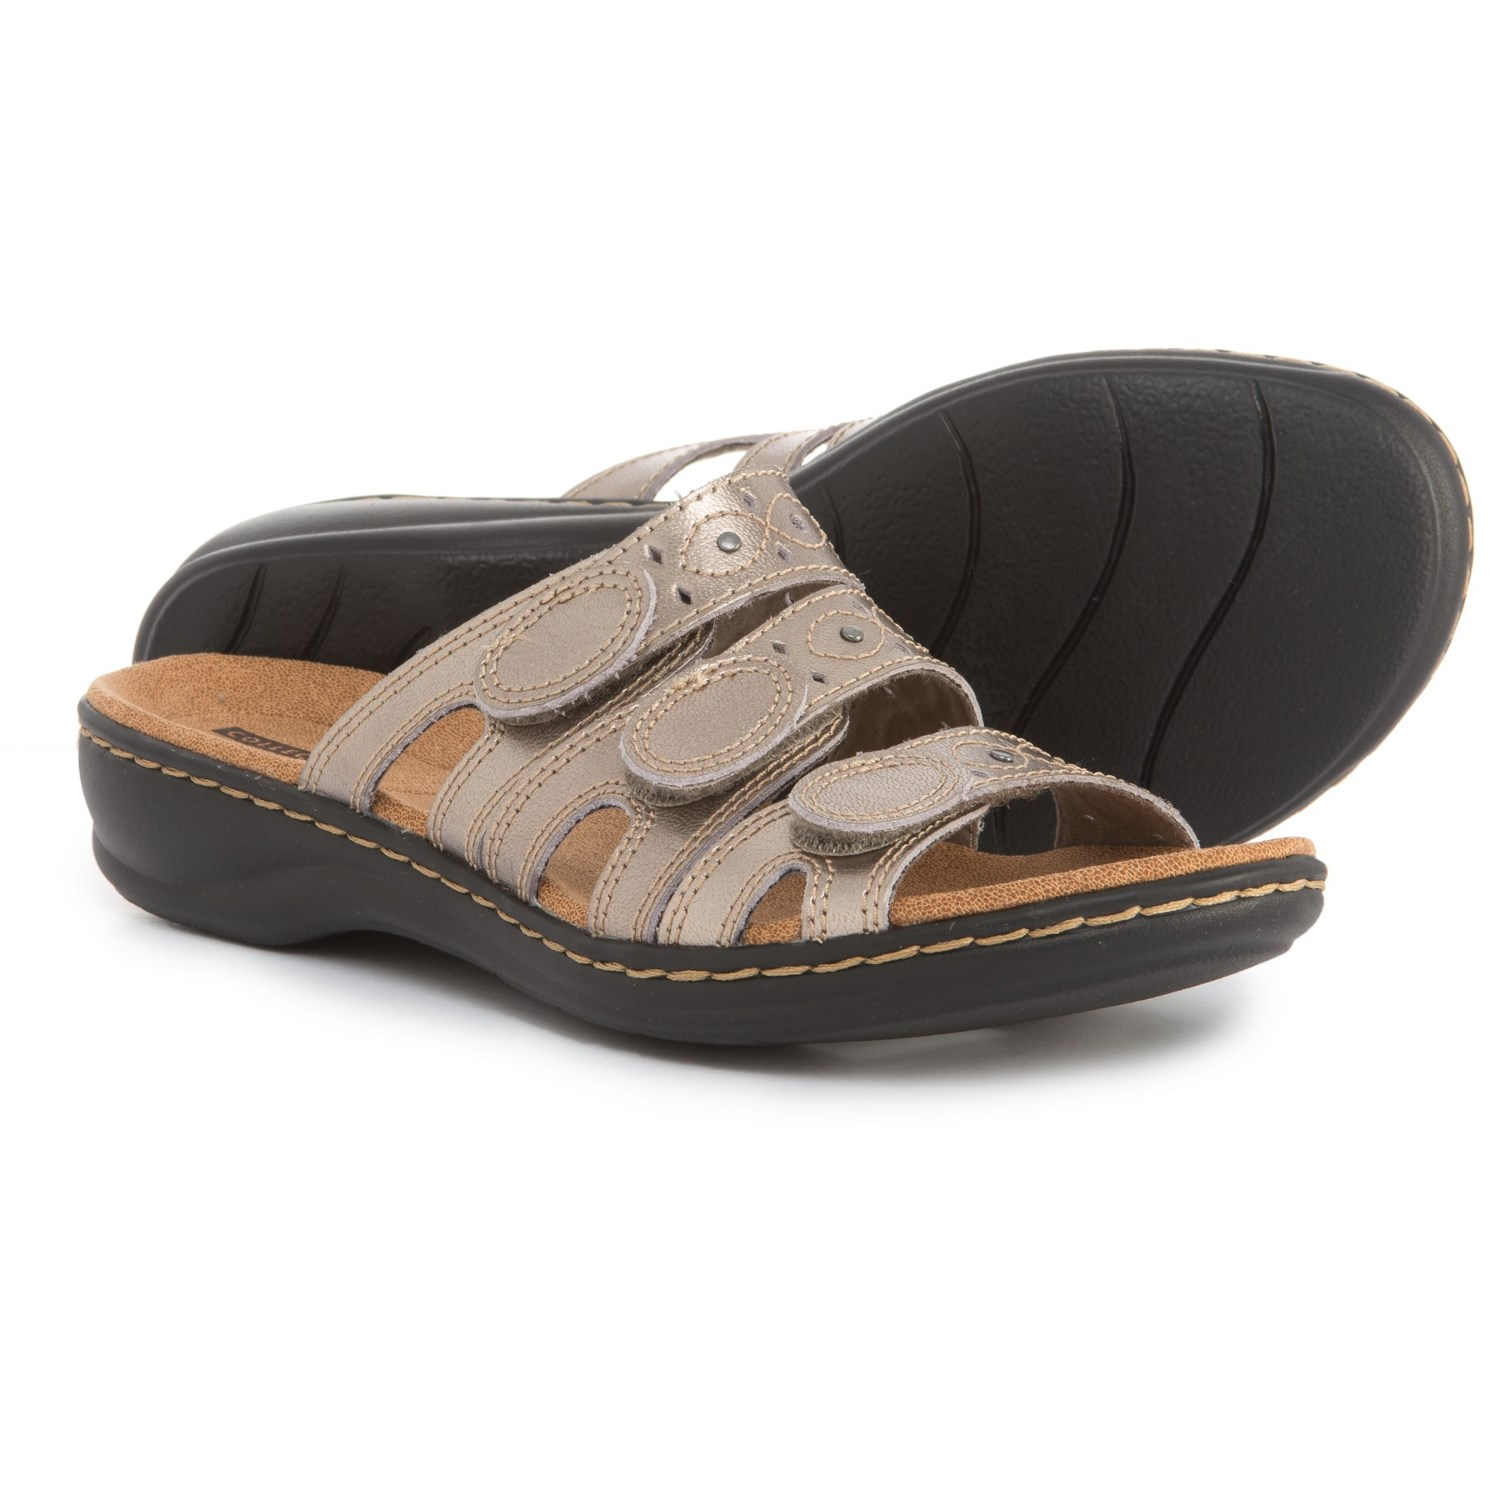 05adefe12575 clarks leisa cacti q leather sandals clarks leisa cacti q sandals for save  52